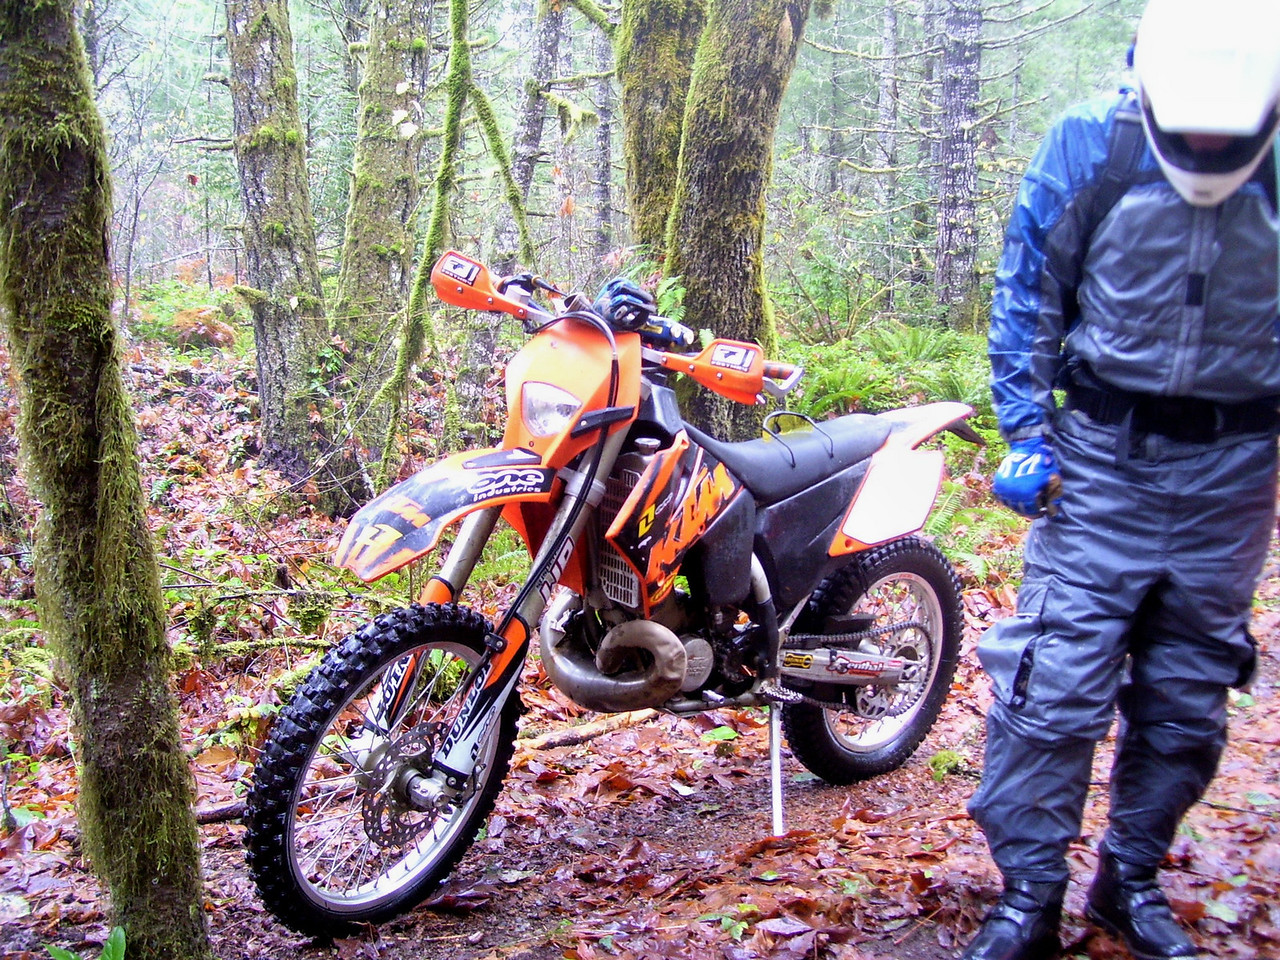 That sure is a pretty KTM. Bill standing by in wet suit.